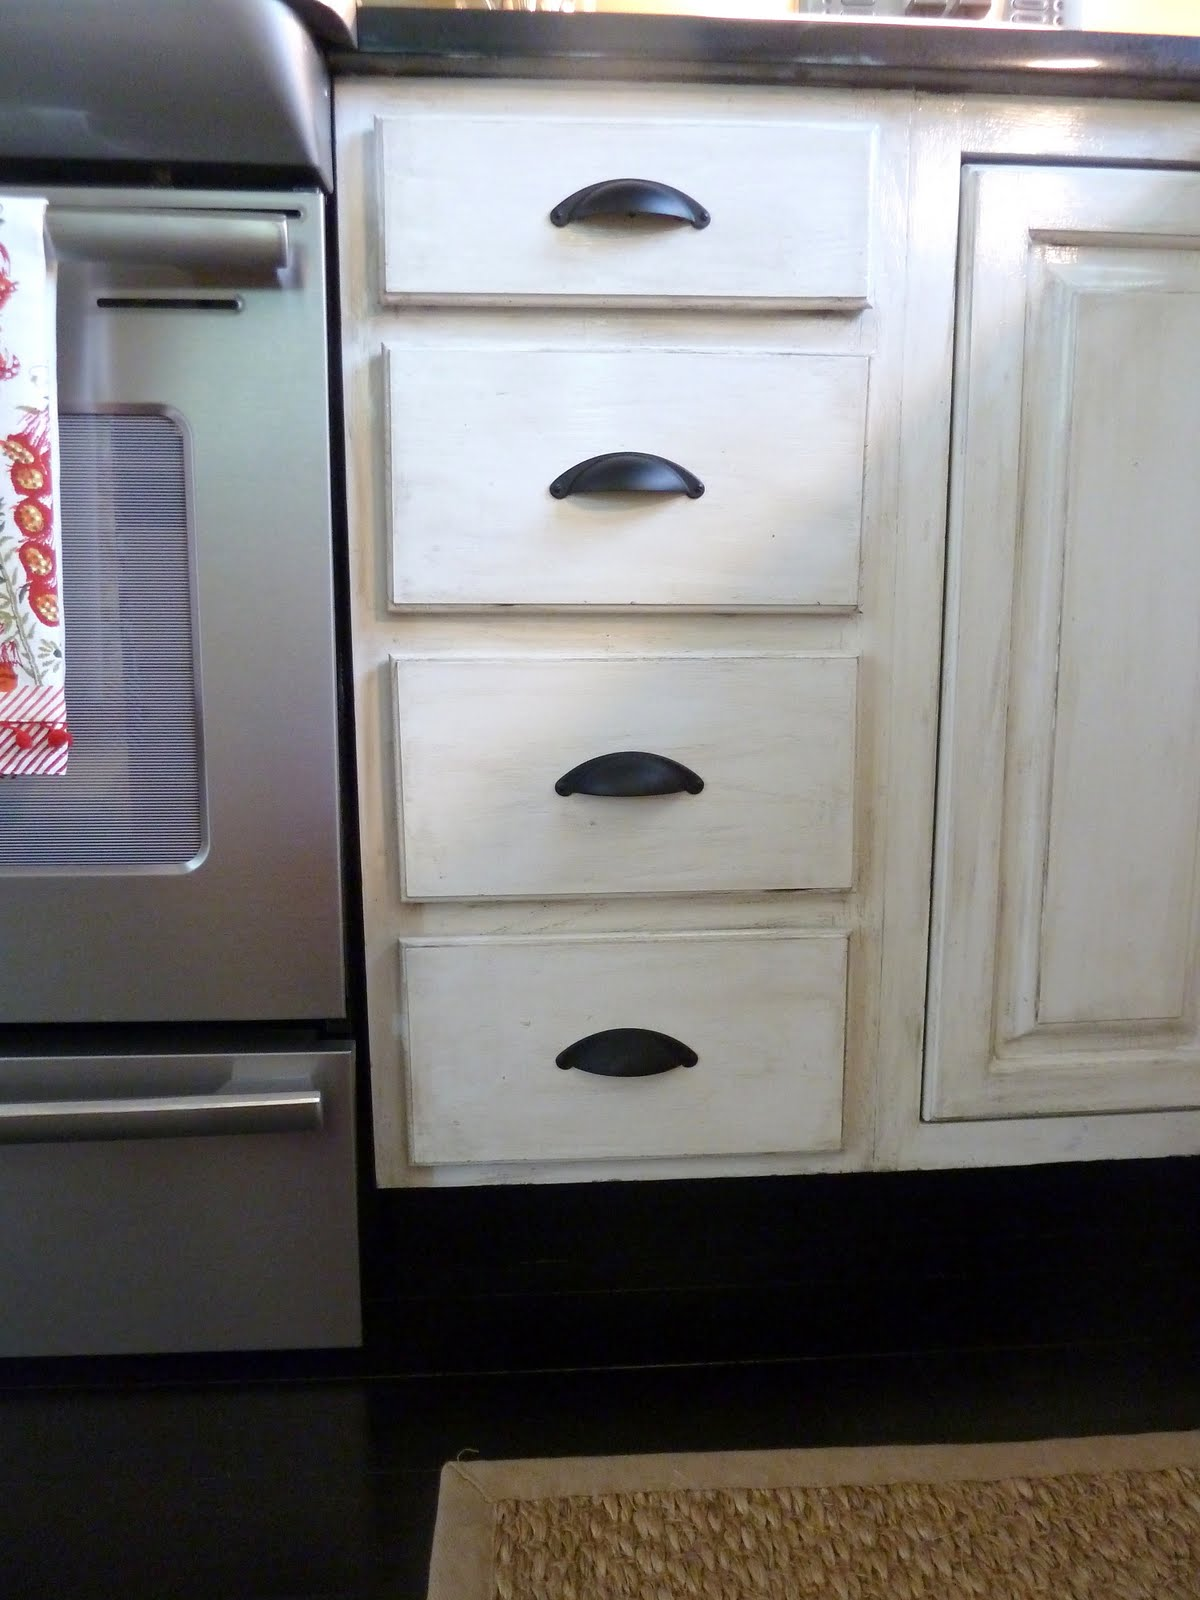 distressed kitchen cabinets - Distressed Kitchen Cabinets: How To Distress Your Kitchen Cabinets